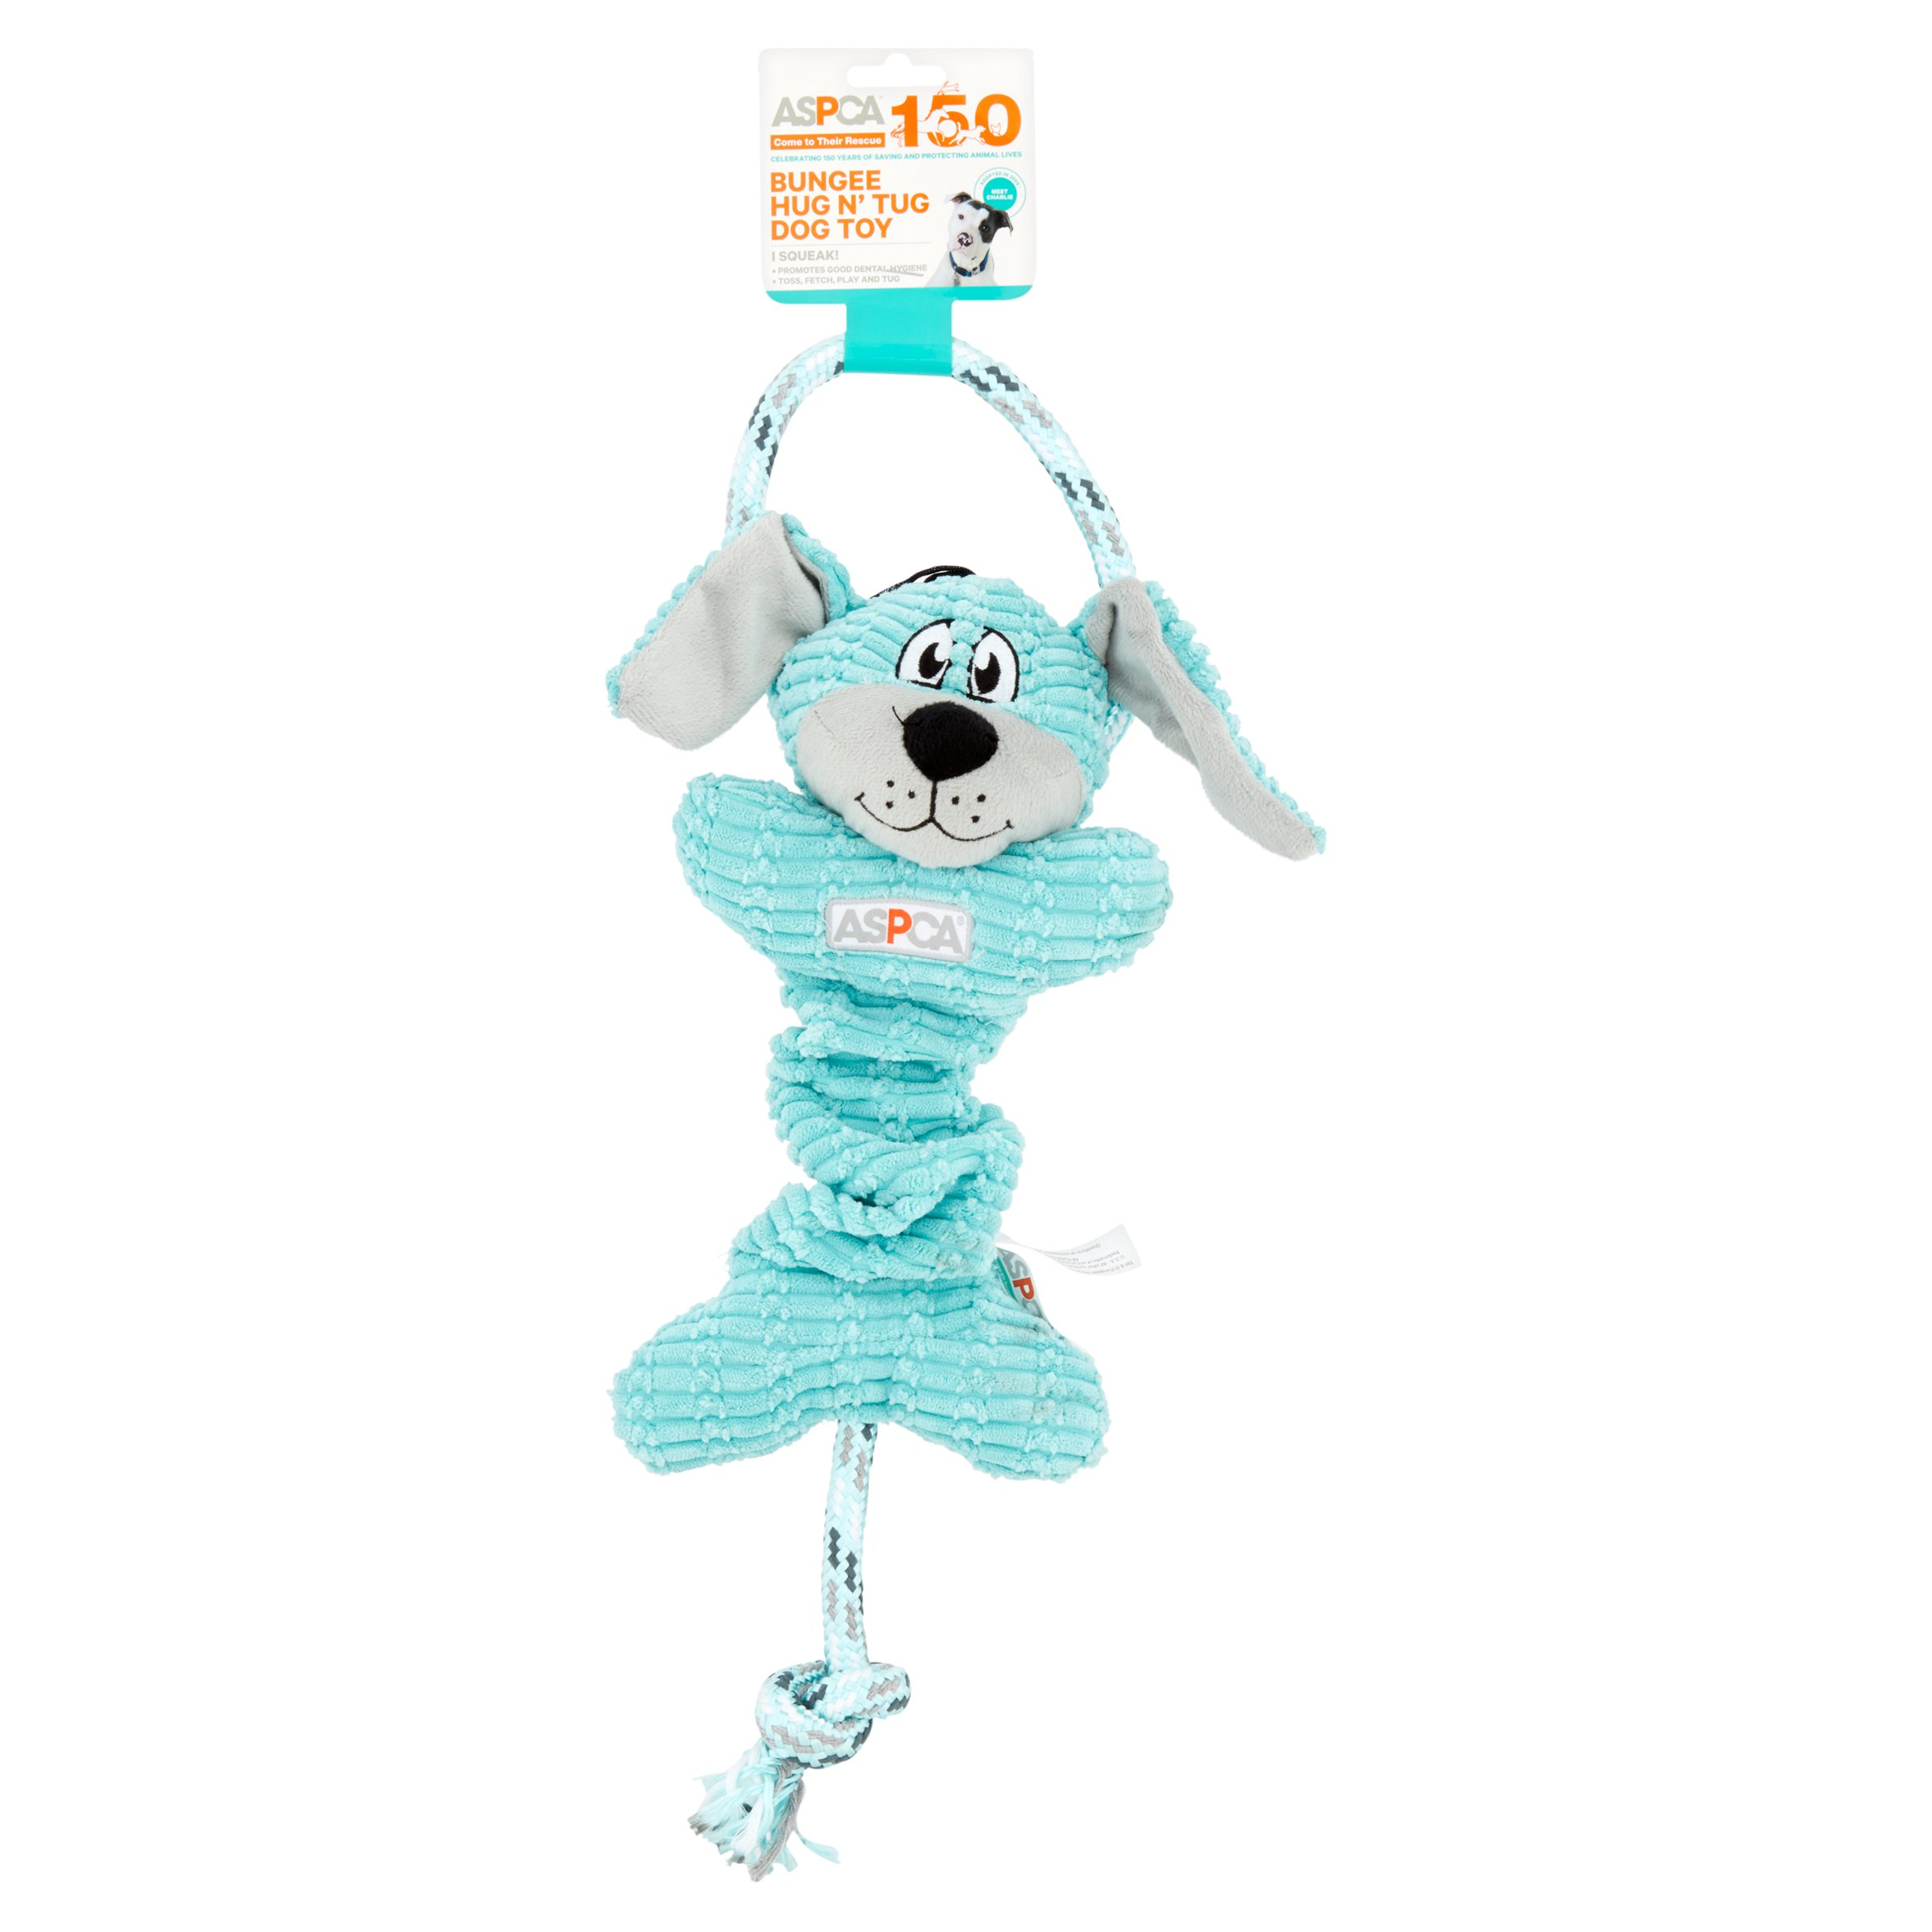 ASPCA Bungee Hug N' Tug Dog Toy by European Home Designs, LLC